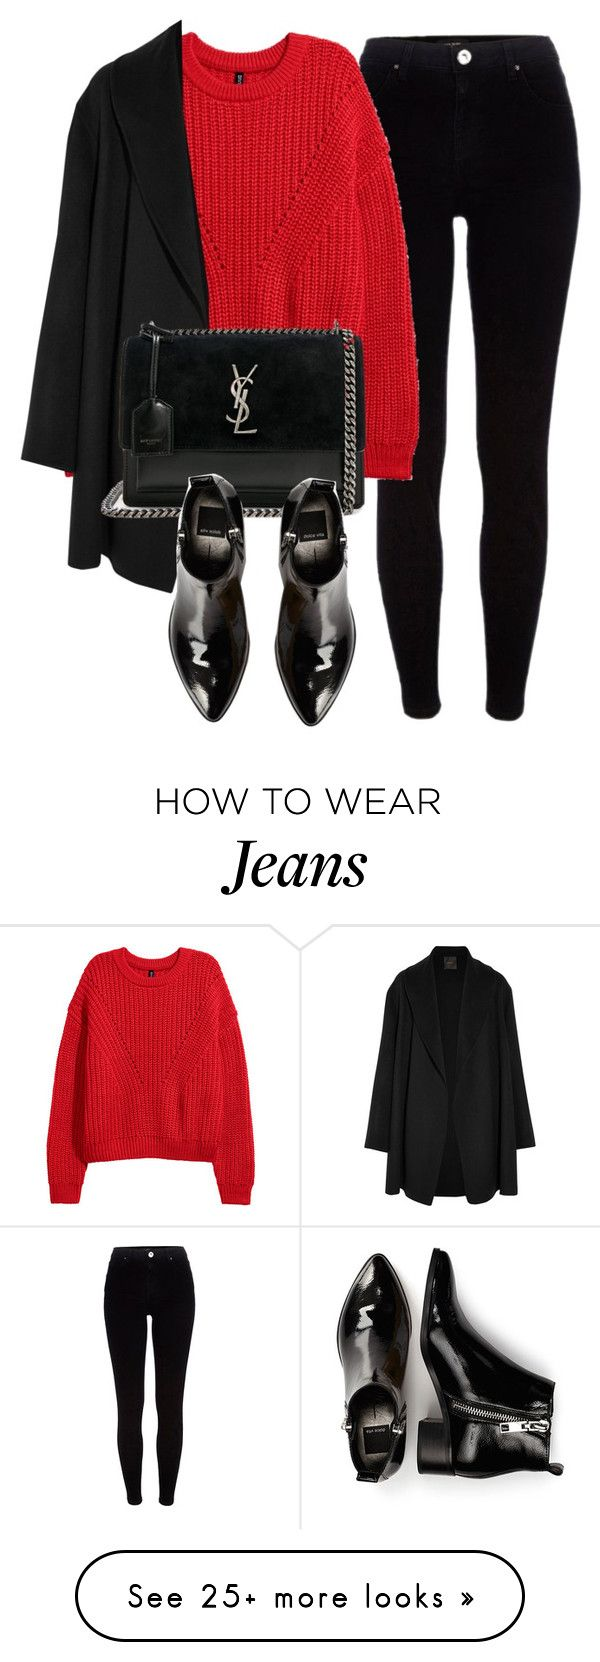 """Untitled #7162"" by laurenmboot on Polyvore featuring River Island, Agnona, Yves Saint Laurent and Dolce Vita"